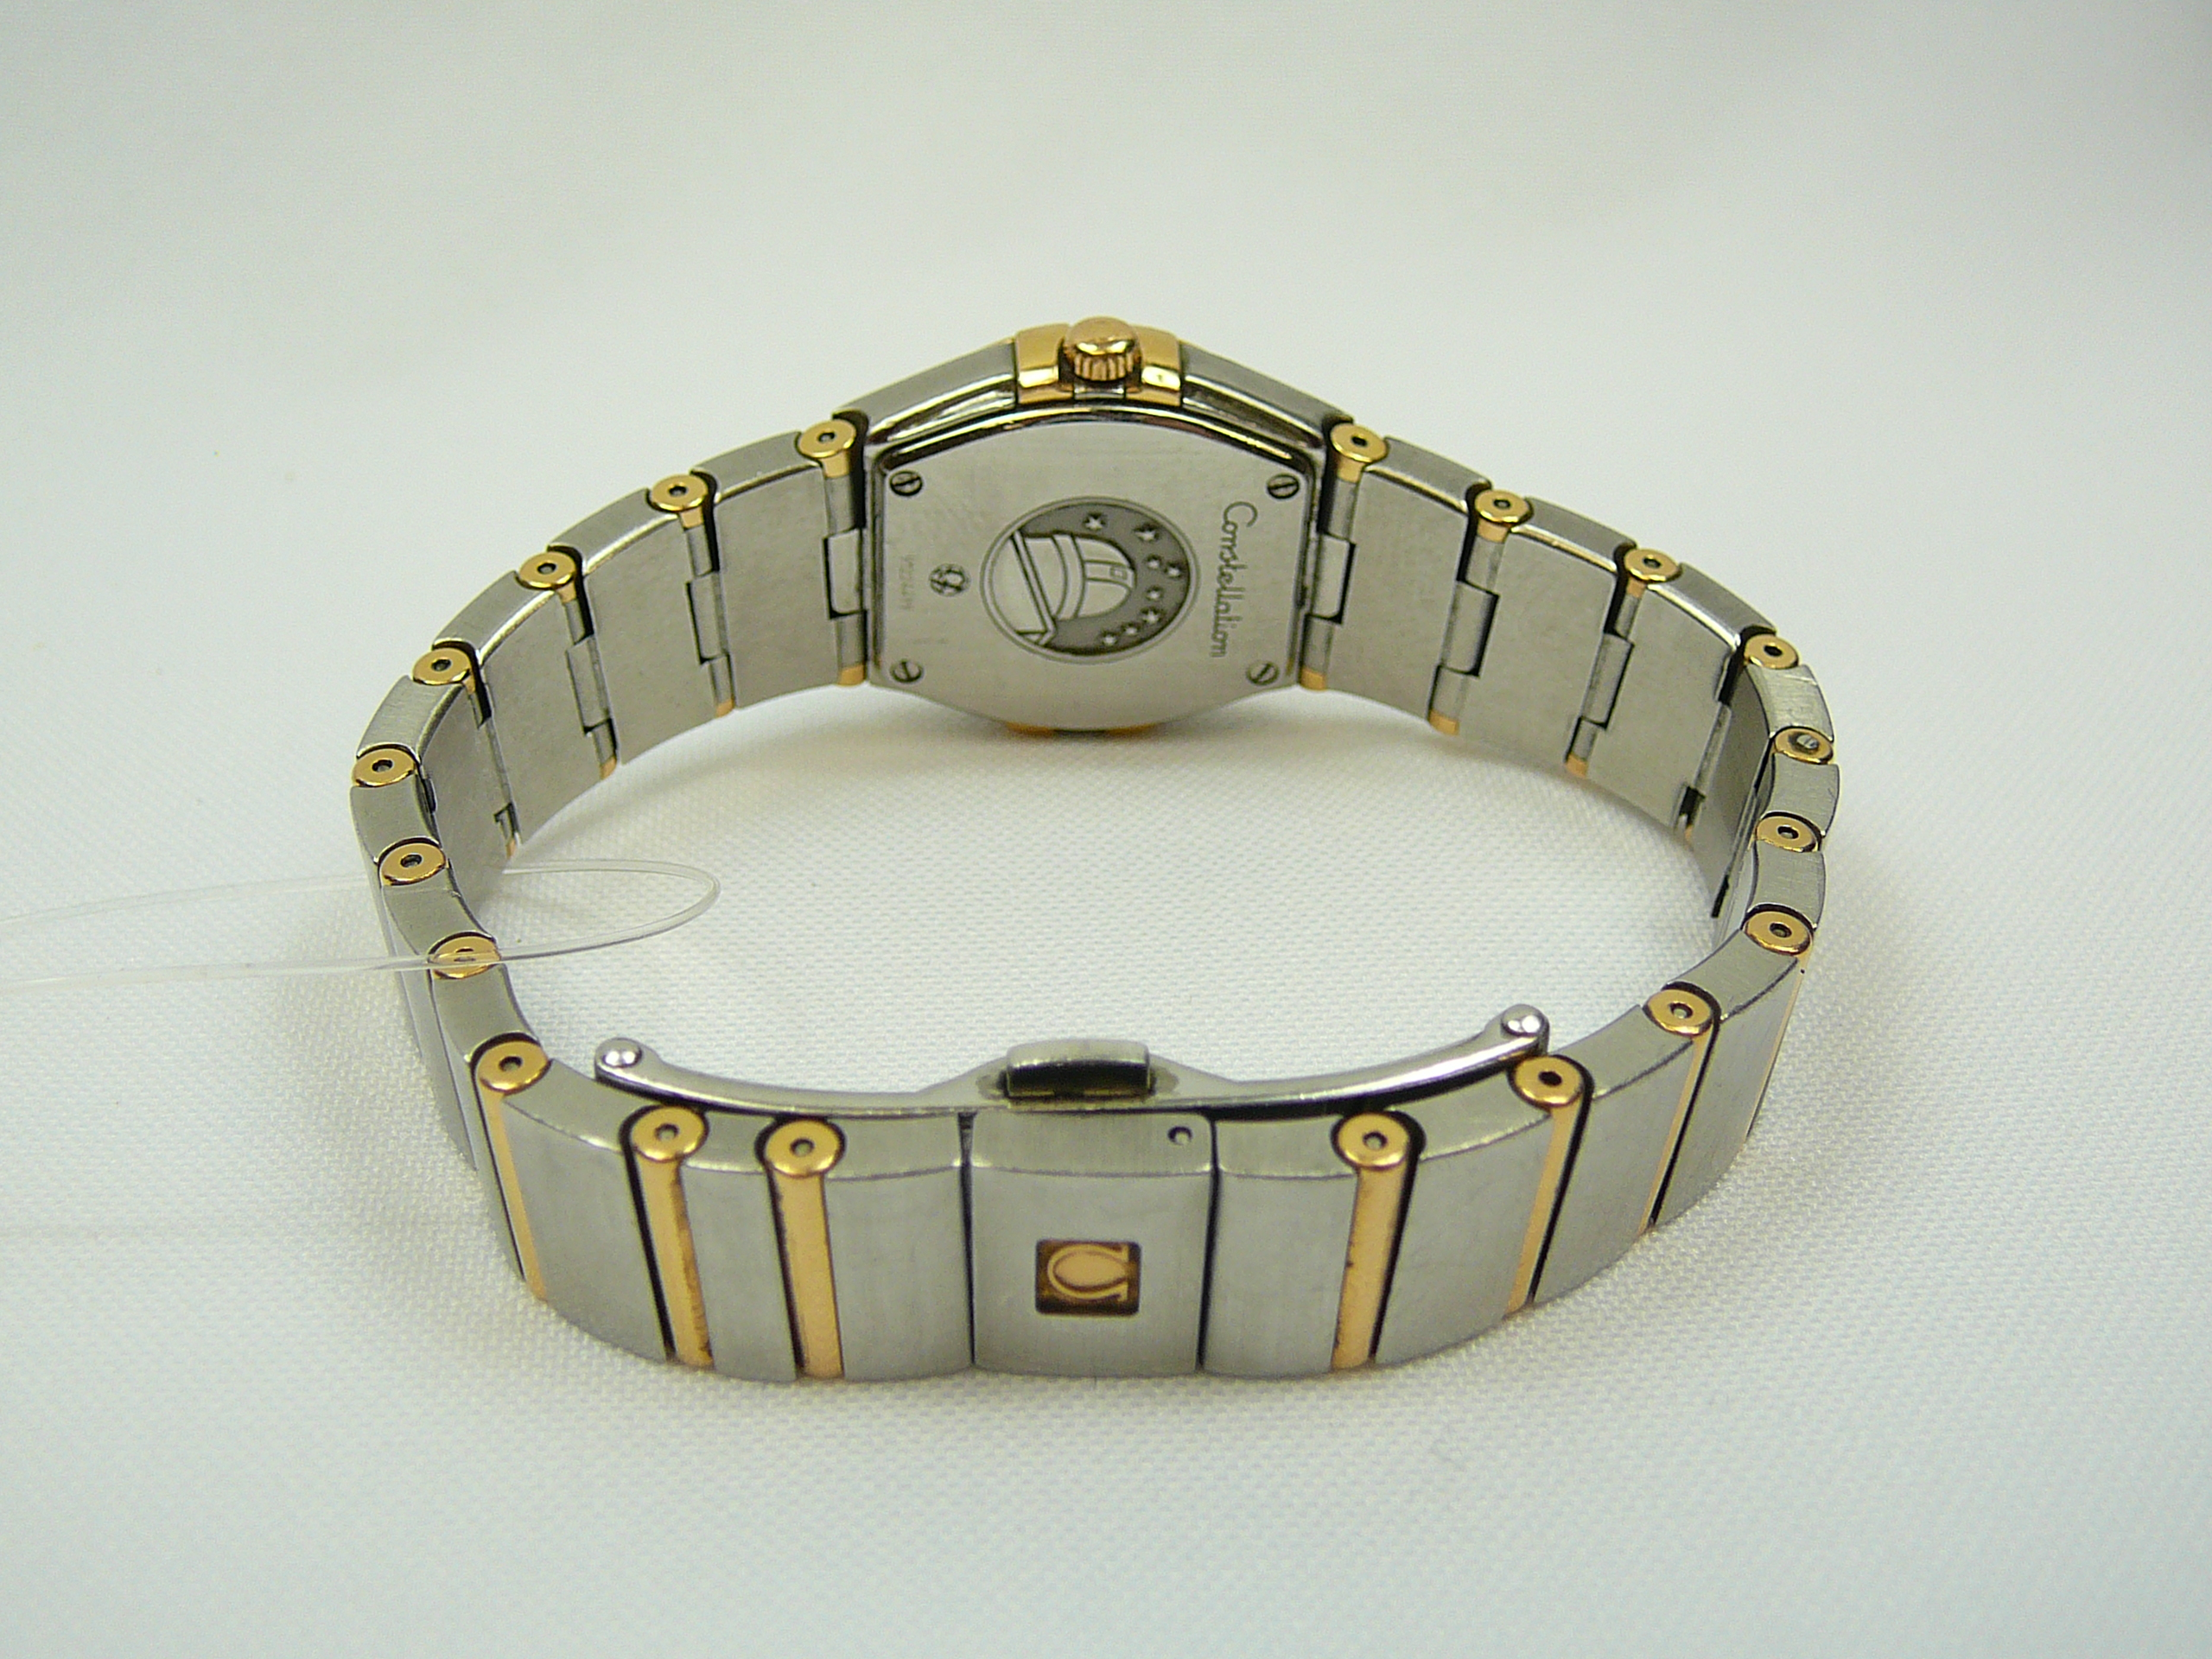 Ladies Omega Wrist Watch - Image 3 of 3